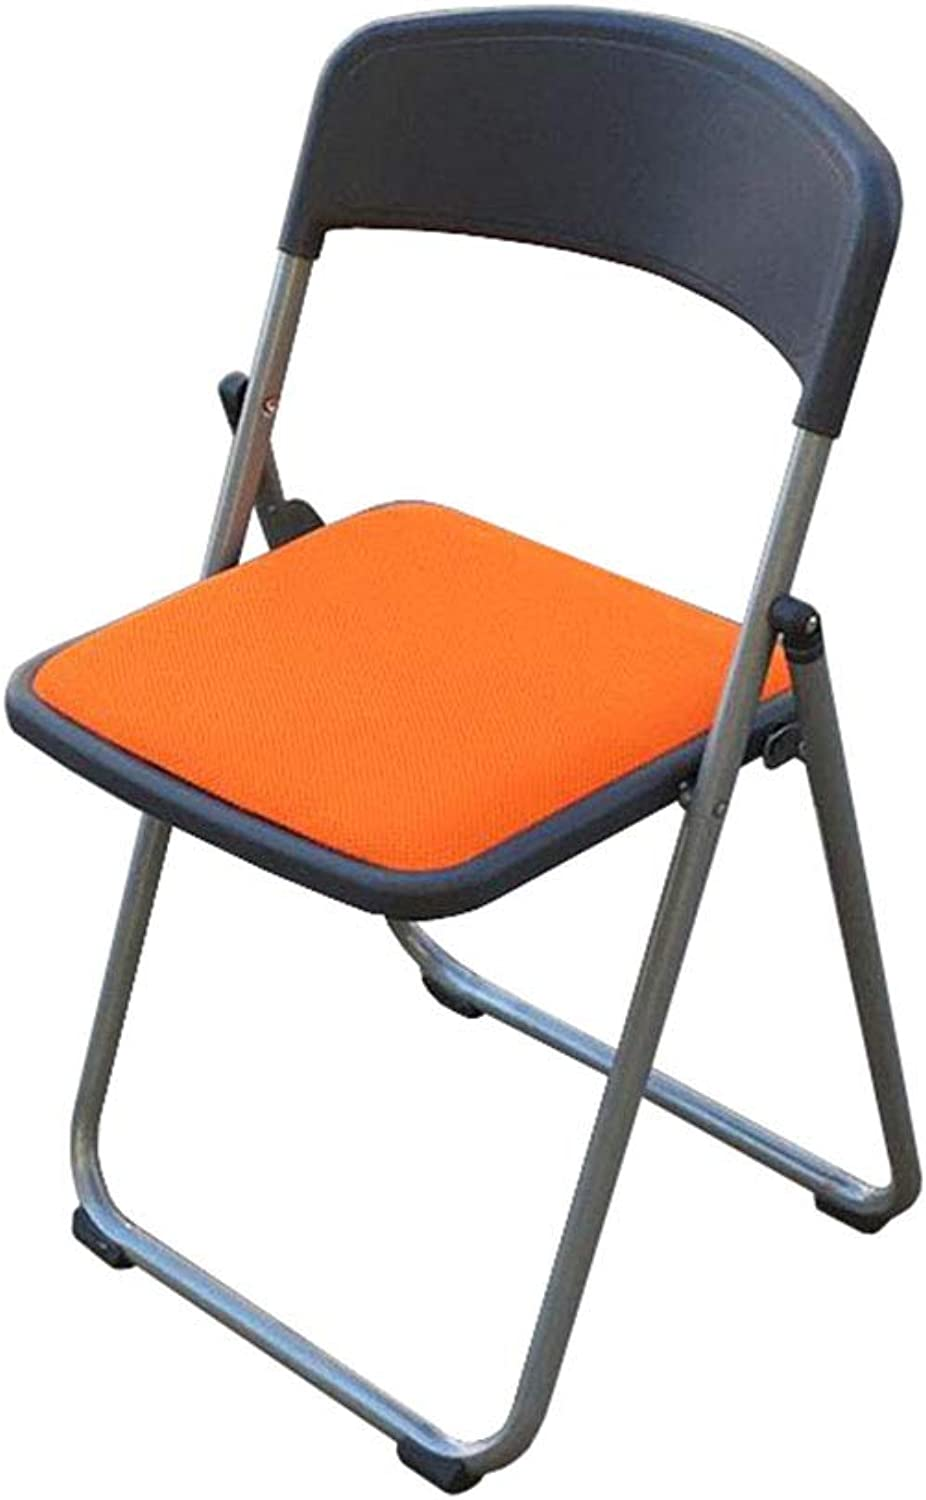 Folding Chair Office Meeting Reception Chair Stool Training orange Mesh Padded